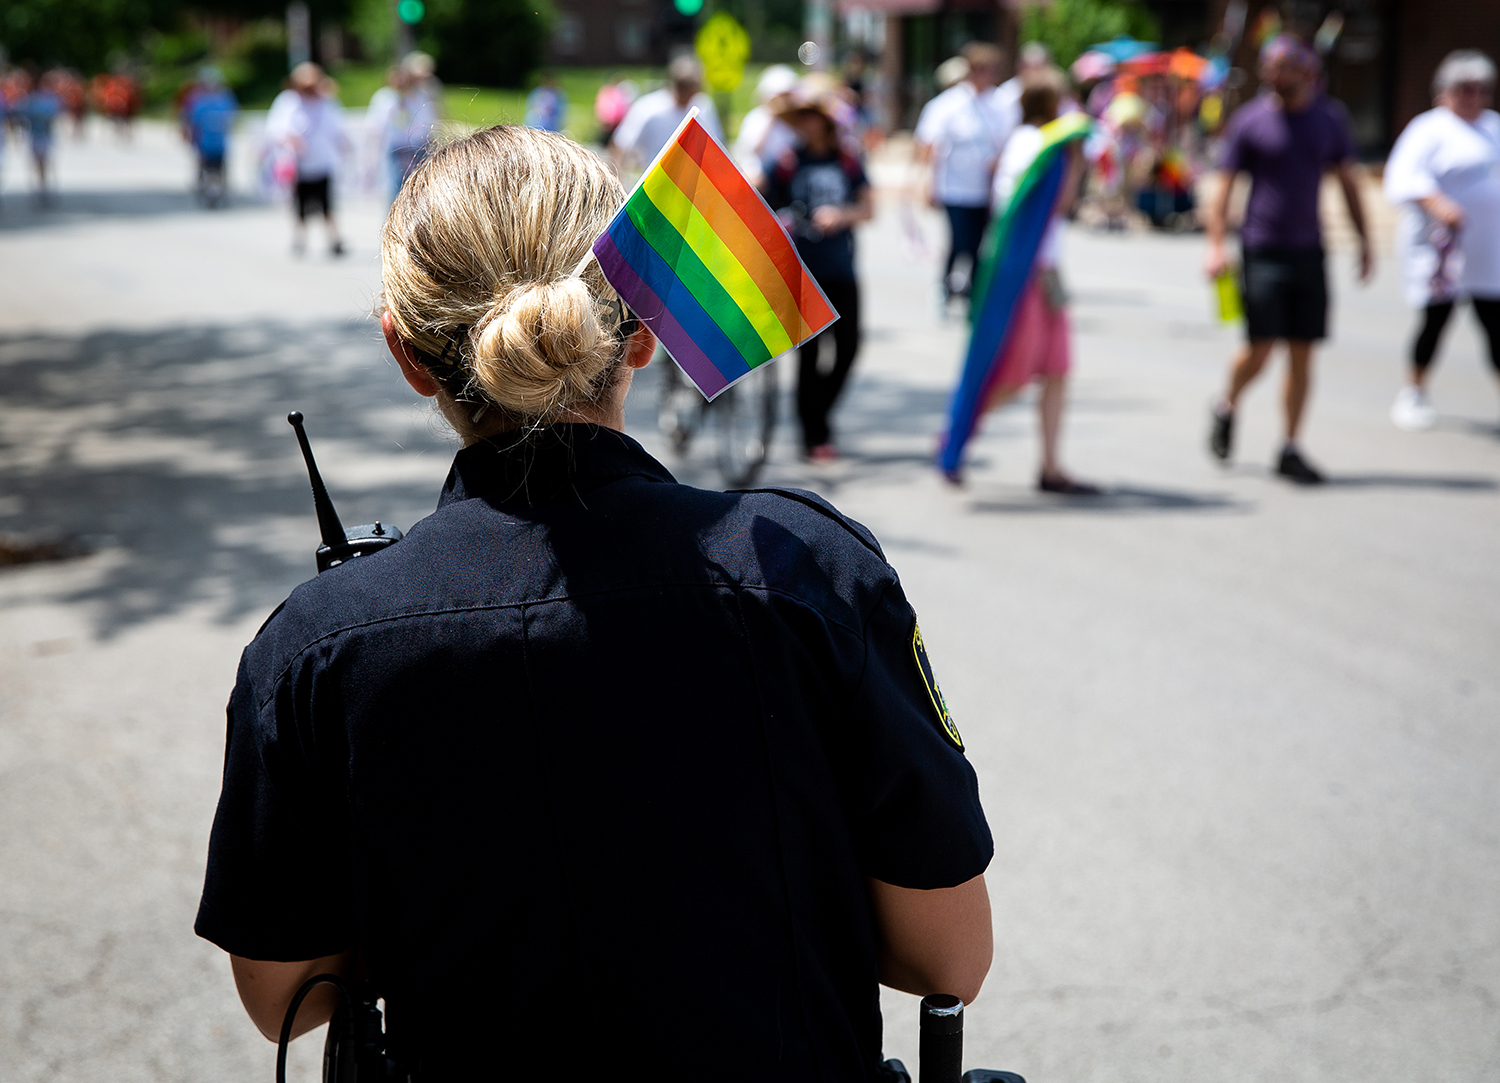 Springfield Police Officer Krystal Holdman sports a rainbow flag in her hair while conducting traffic control along Fifth Street during Springfield's PrideFest parade Saturday, May 19, 2018 in Springfield, Ill. [Rich Saal/The State Journal-Register]